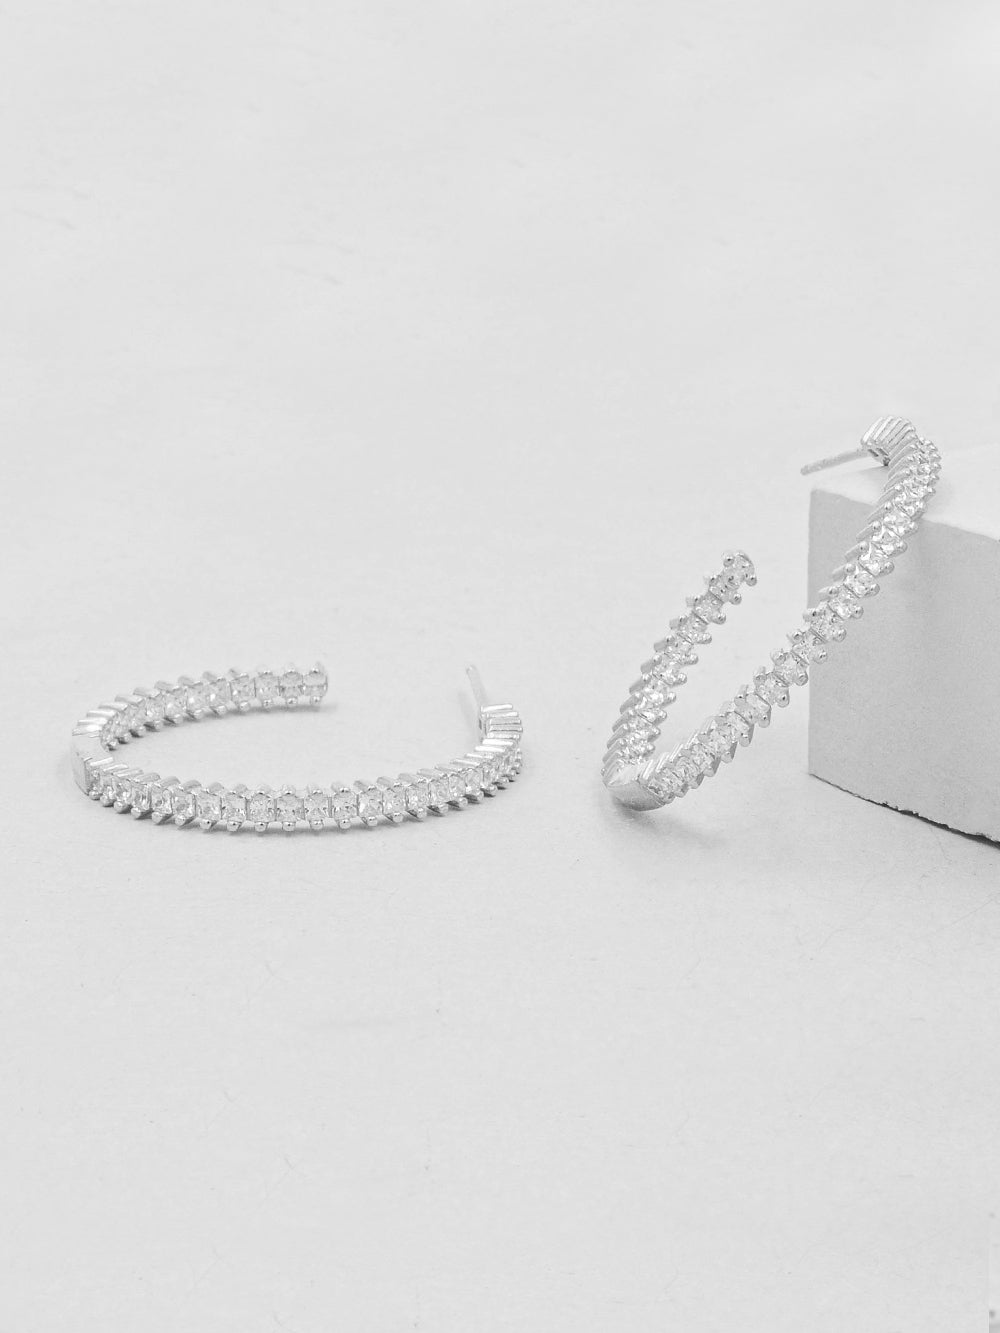 Rhodium Plated Baguette Hoop Earrings by The Faint Hearted Jewelry